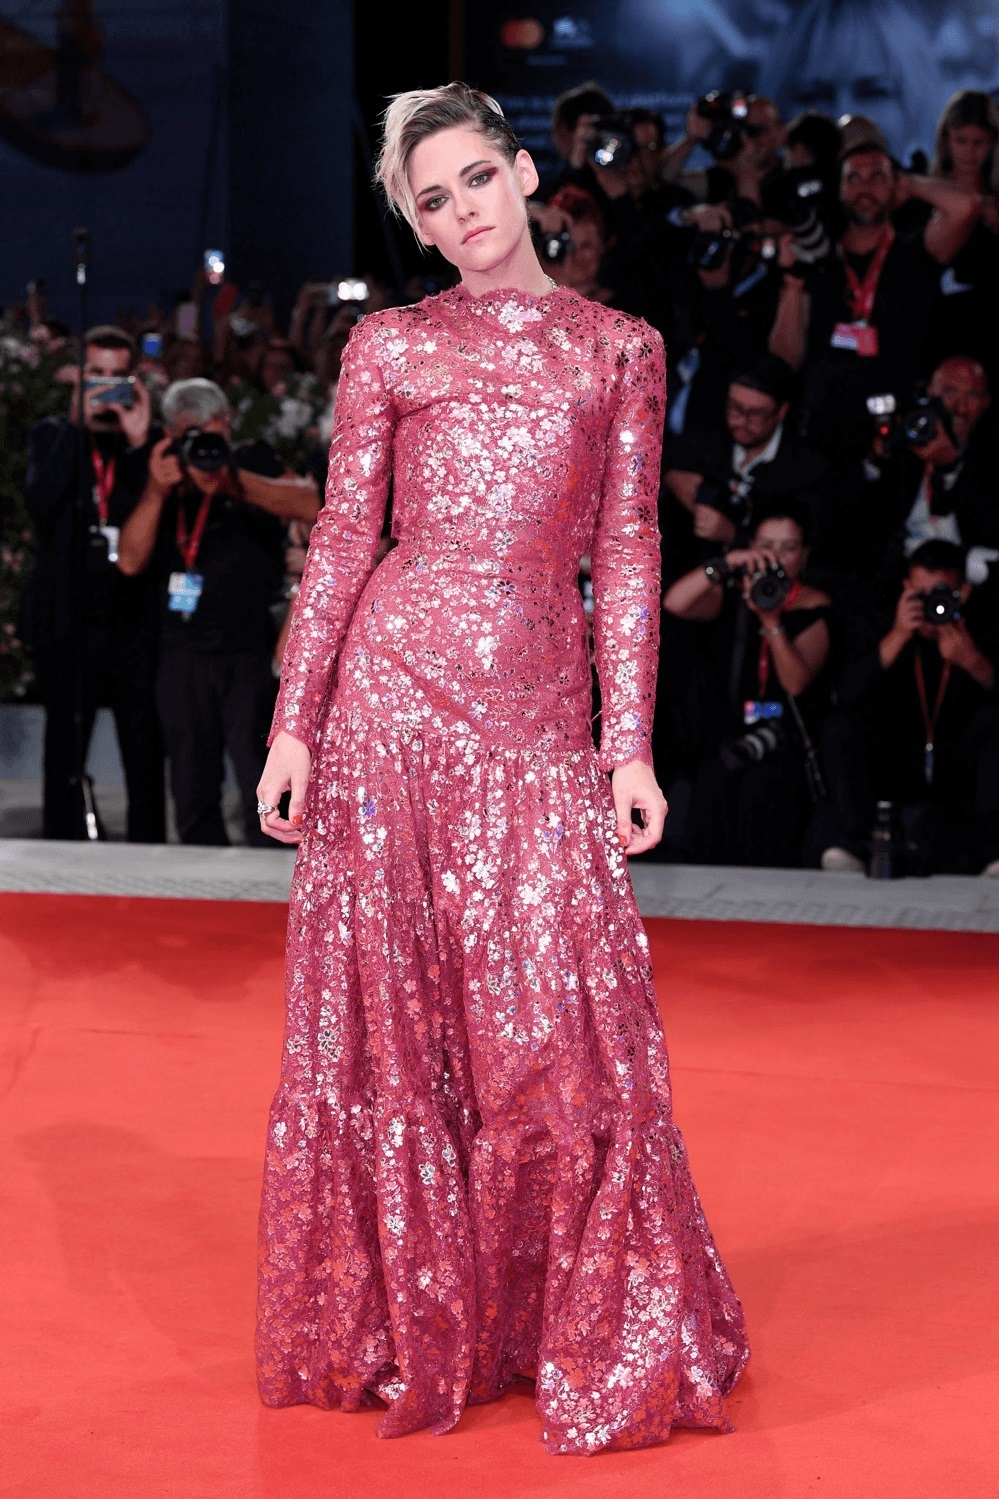 Kristen Stewart cuts a feminine figure in a red laser-cut gown as she leads the arrivals for Seberg premiere at the 76th Venice Film Festival